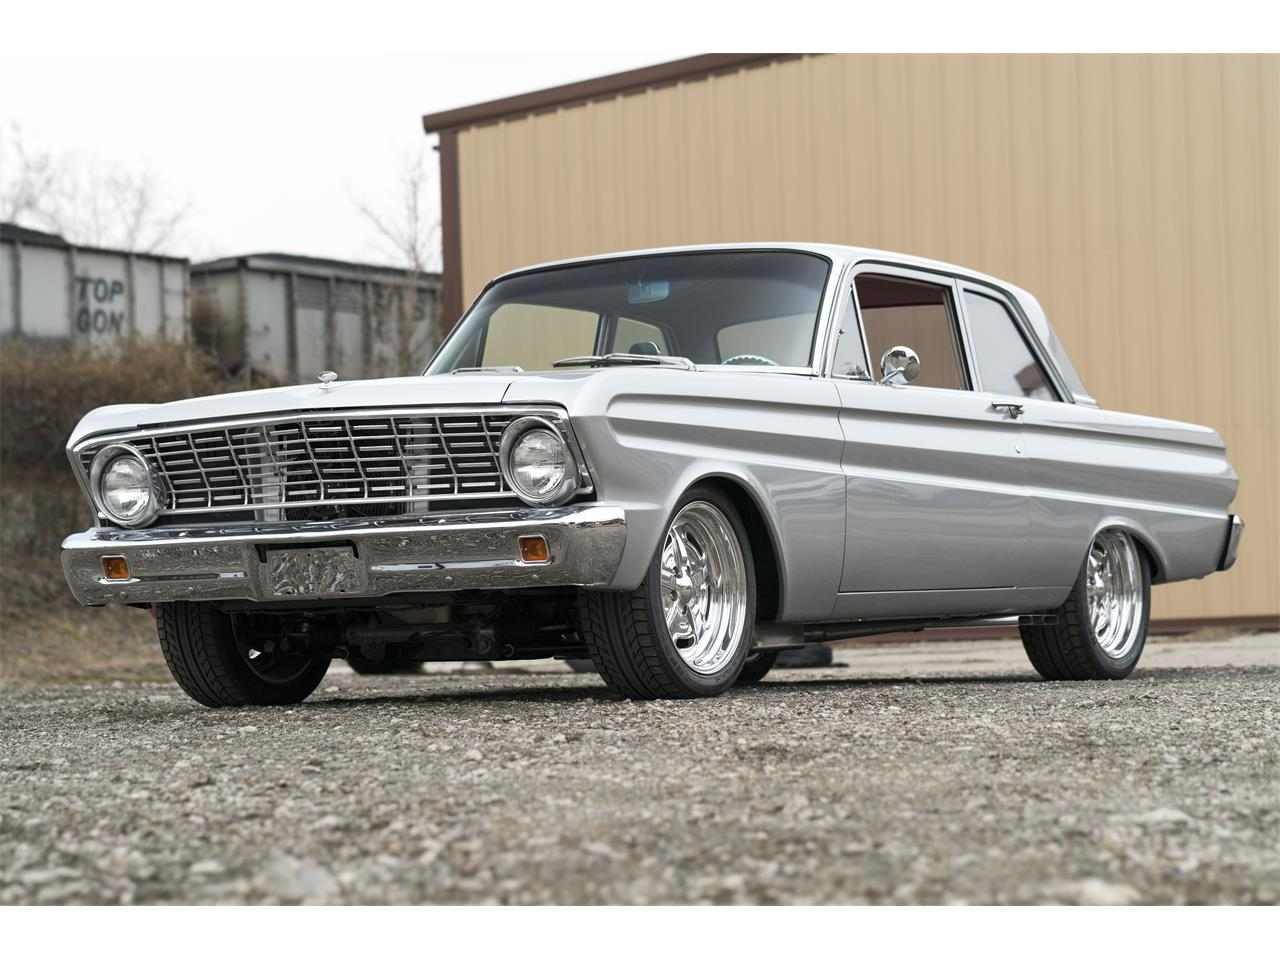 Large Picture of Classic '64 Falcon located in Pennsylvania - $54,000.00 Offered by Fort Pitt Classic Cars - PZS8